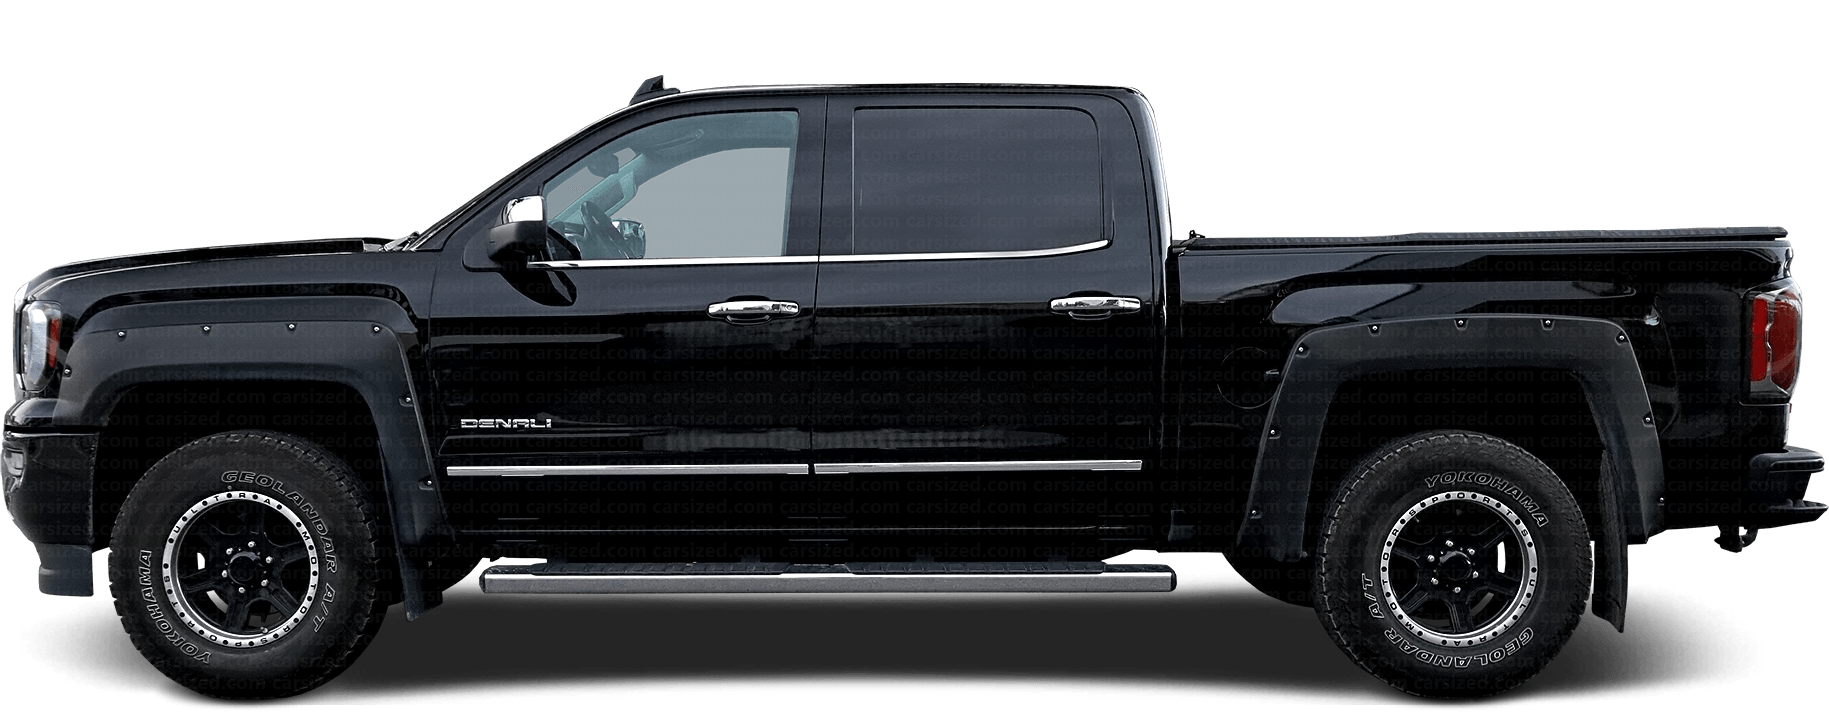 GMC Sierra Pick-up 2015-2018